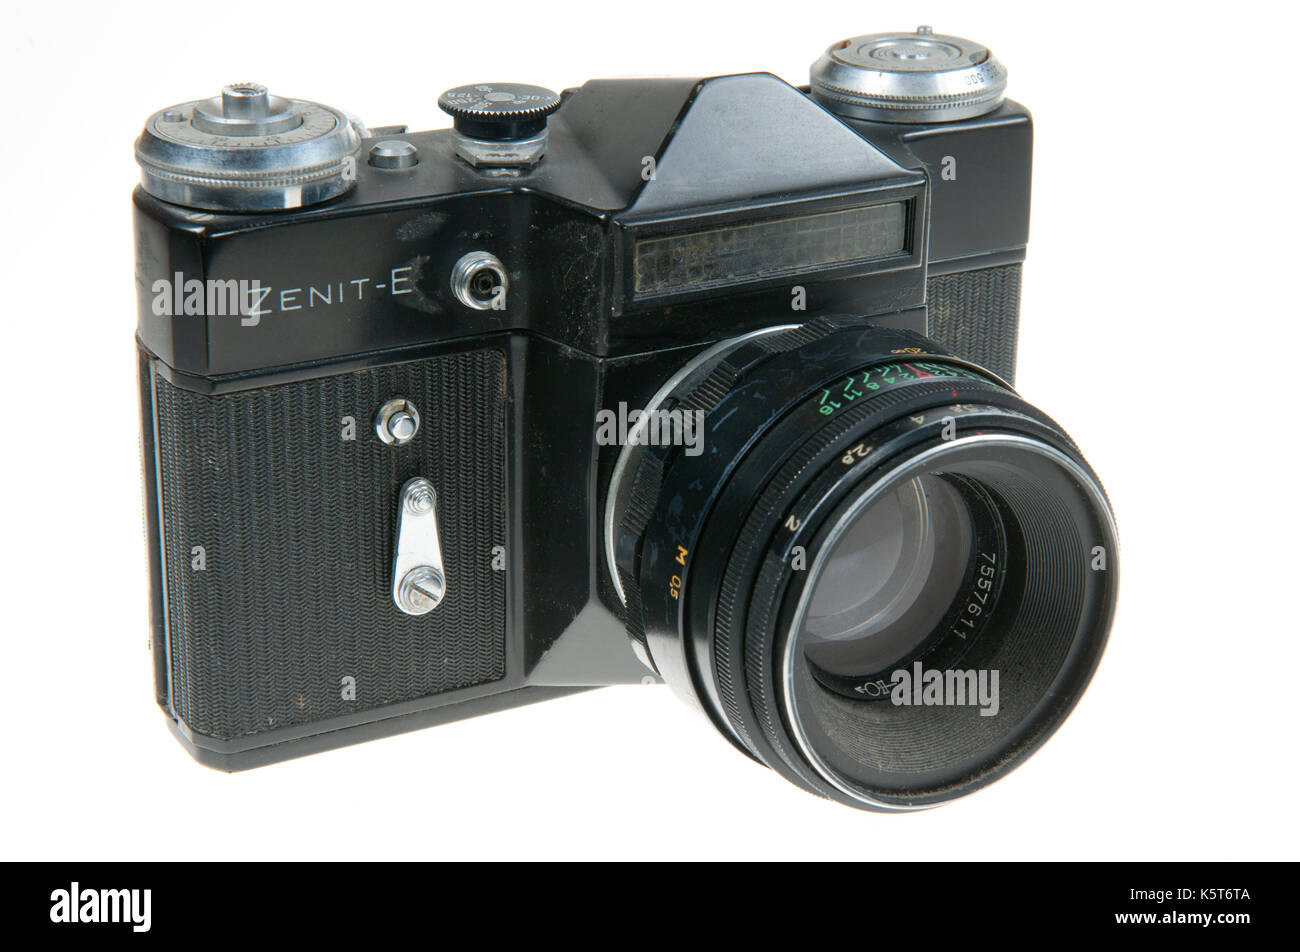 Krasnogorsk Zenit E 35mm SLR camera made bewtween 1965 and 1981 - Stock Image